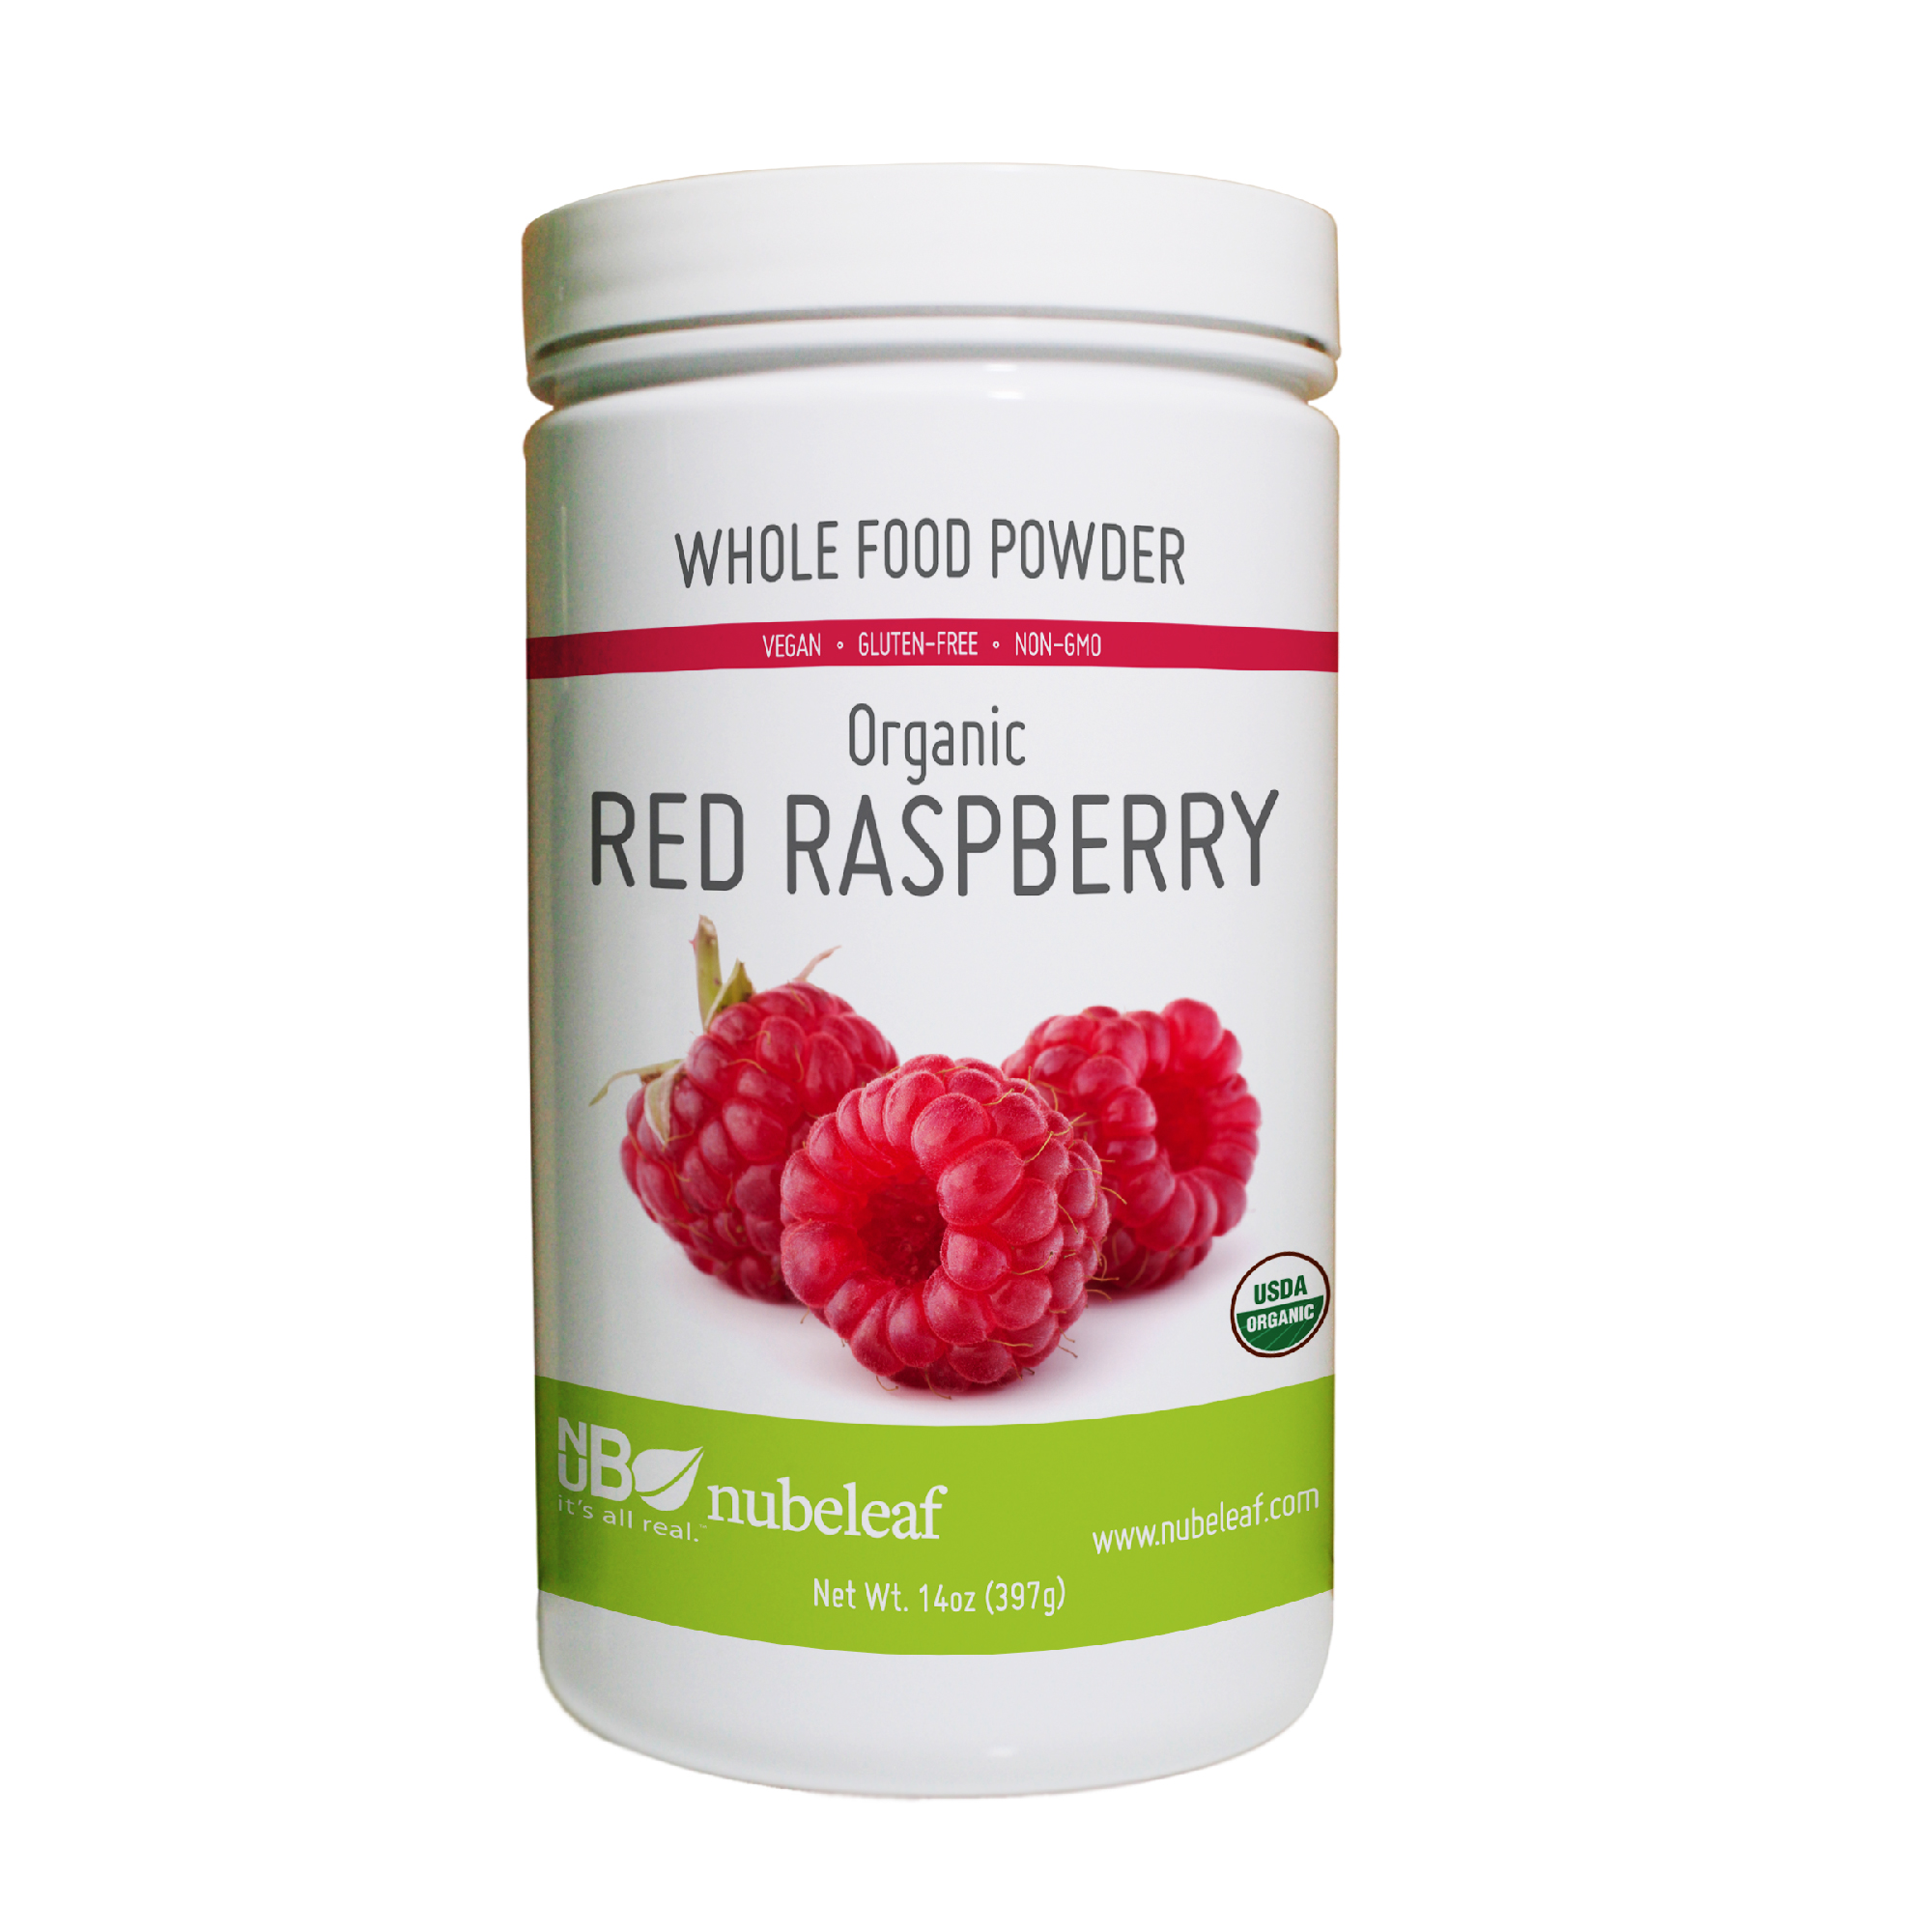 Erica's favorite nubeleaf product is our Organic Red Raspberry Powder.